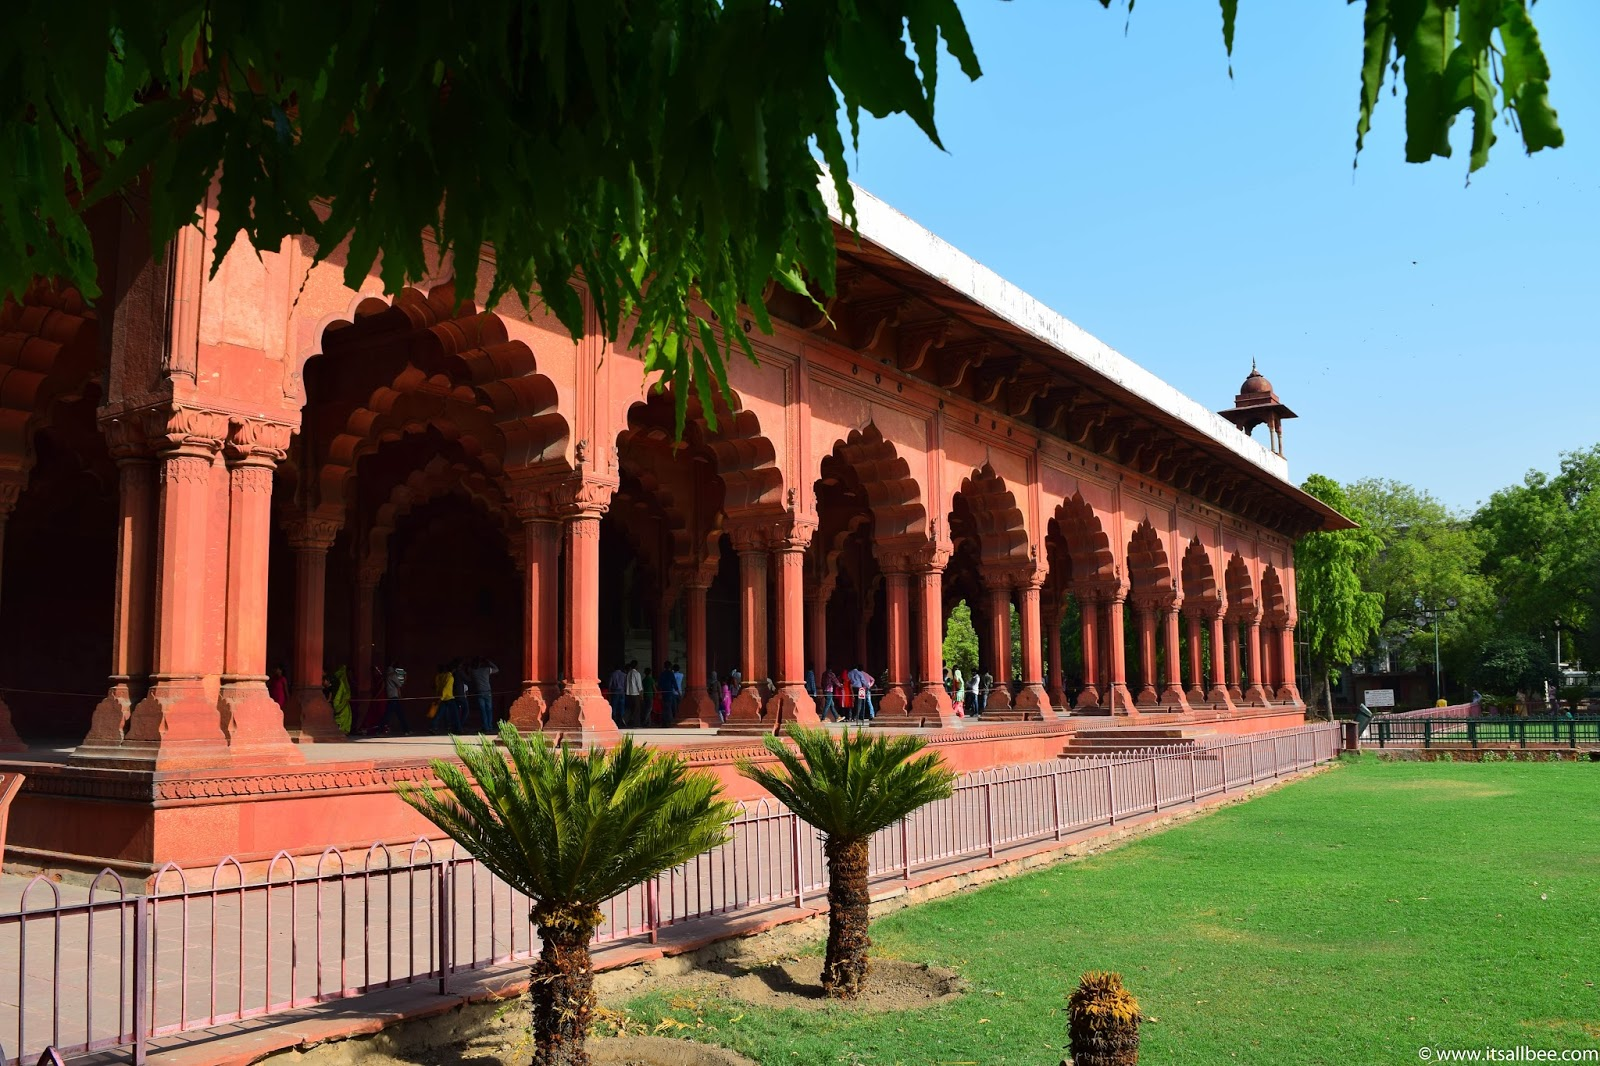 India - places to visit in New Delhi - The Red Fort